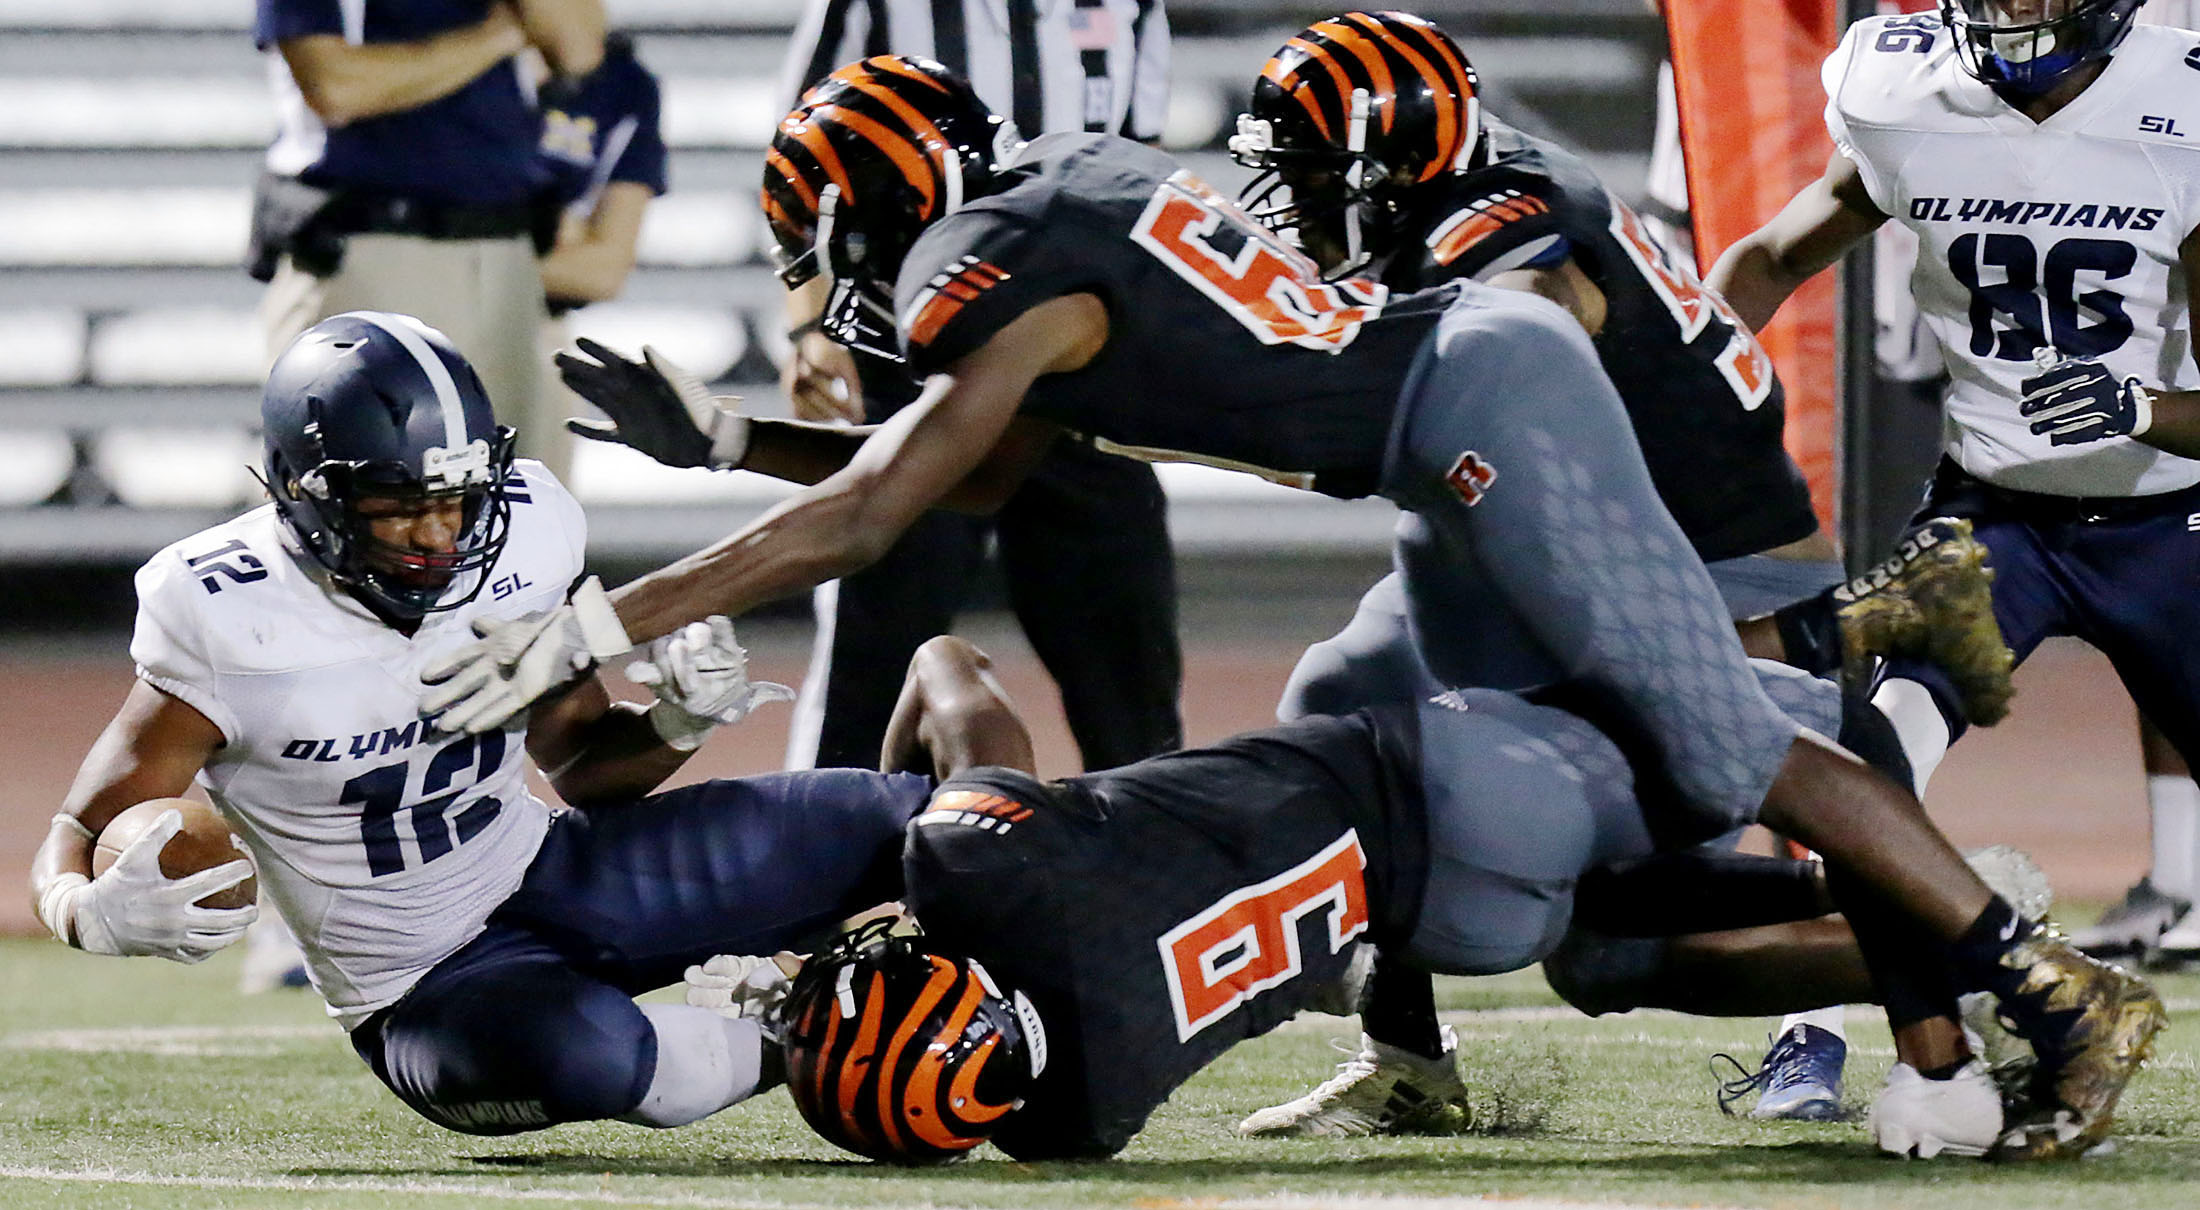 San Diego Mesa's Austin Denson #12 is taken down by Riverside City College defenders after the catch in the second half of the game at Wheelock Field  in Riverside on Saturday, September 29, 2018.